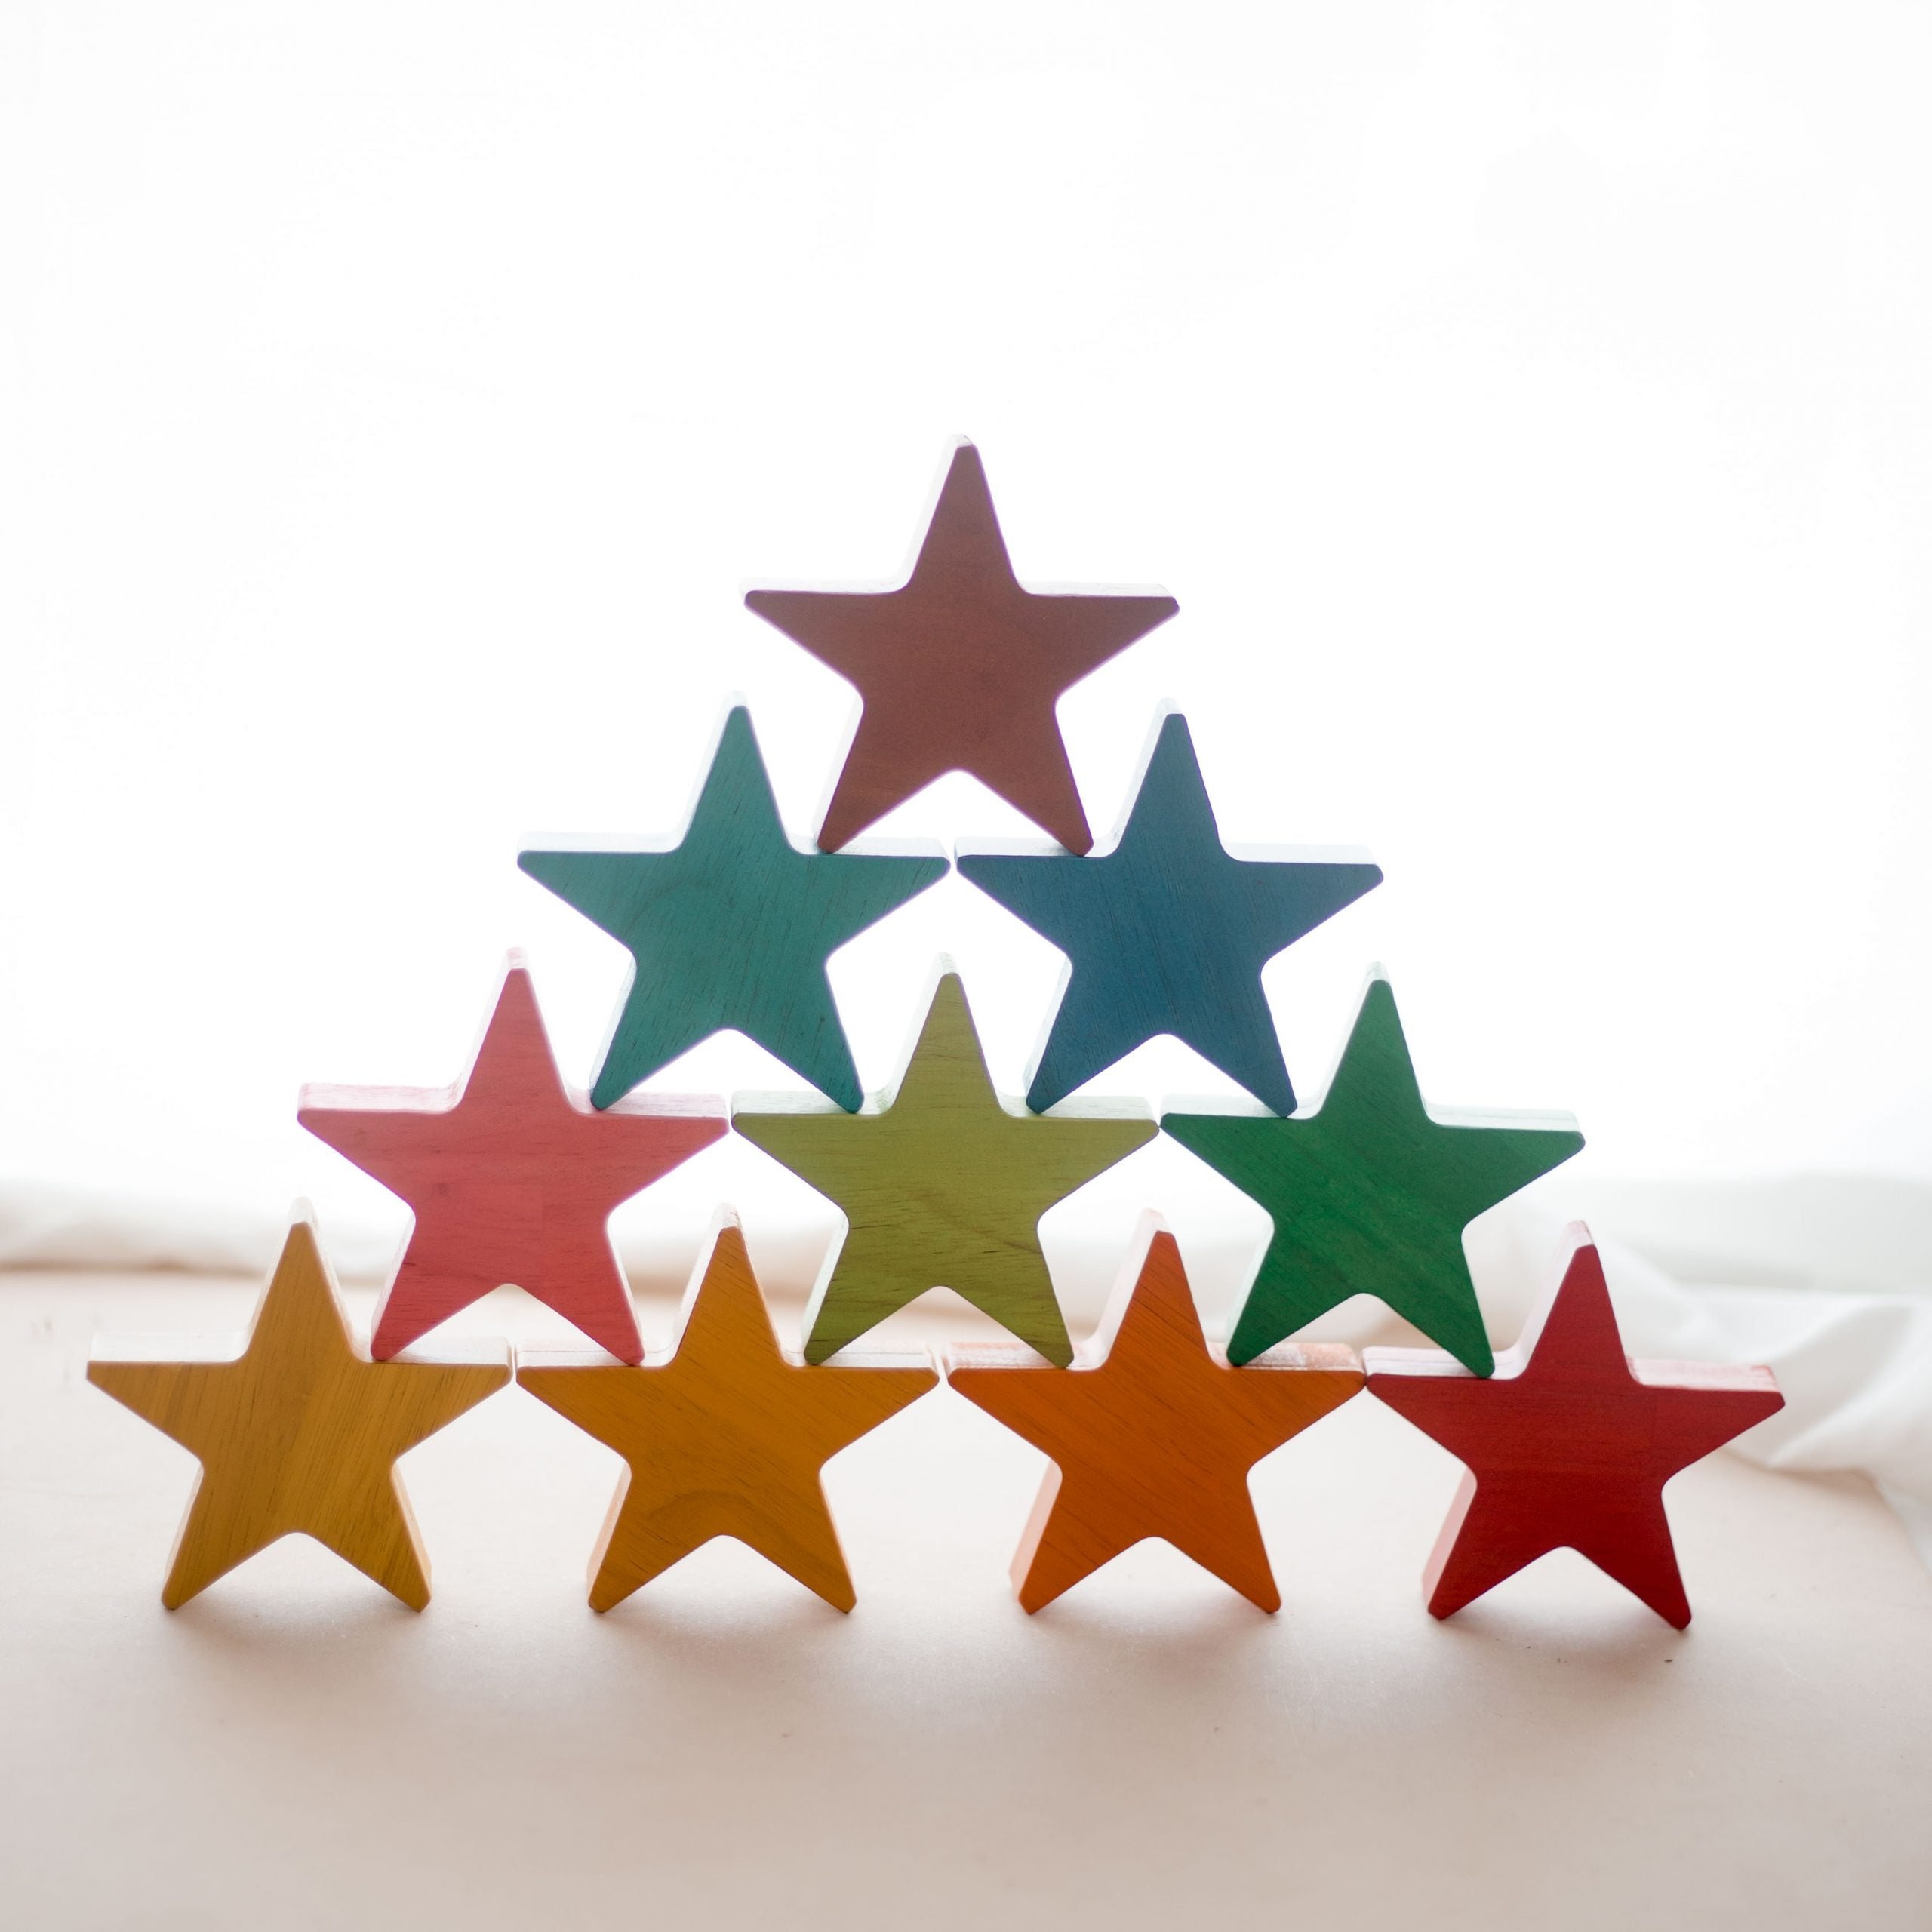 Qtoys Wooden Rainbow Stars set of 10